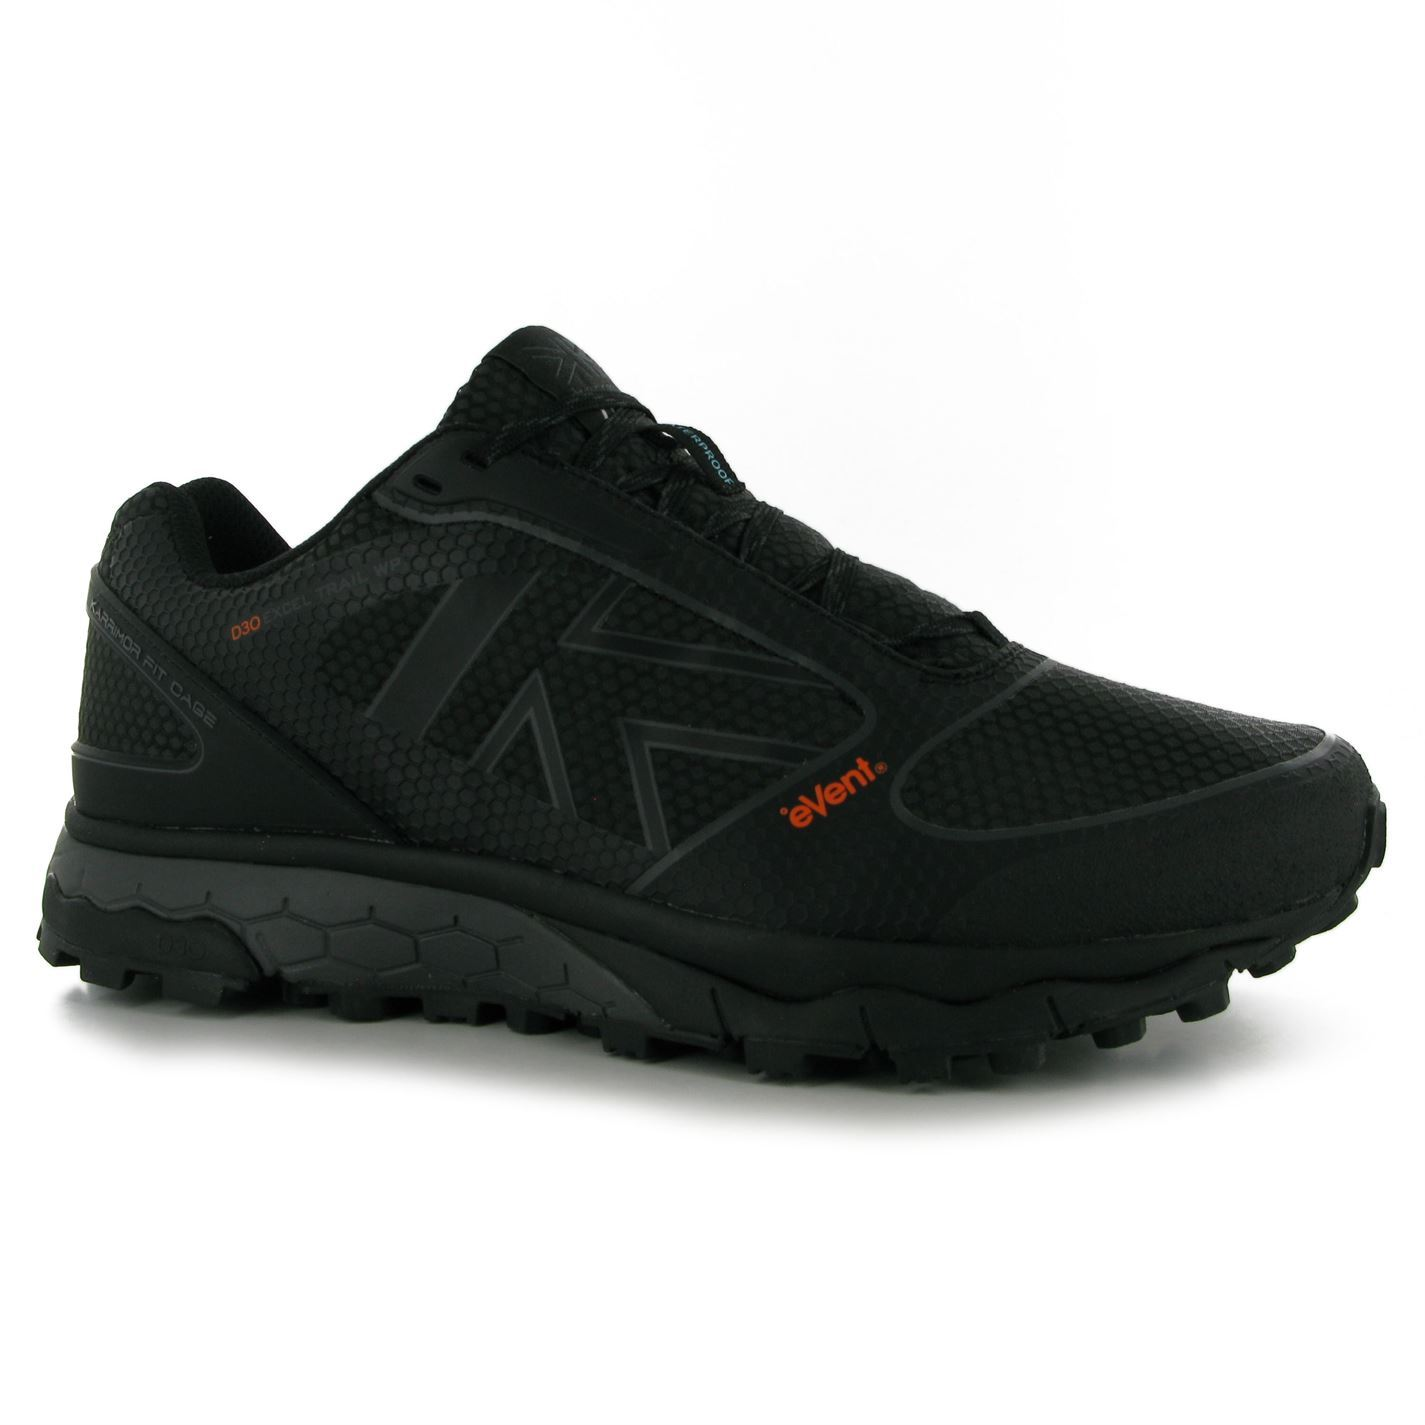 Under Armour Trail Running Shoes Amazon